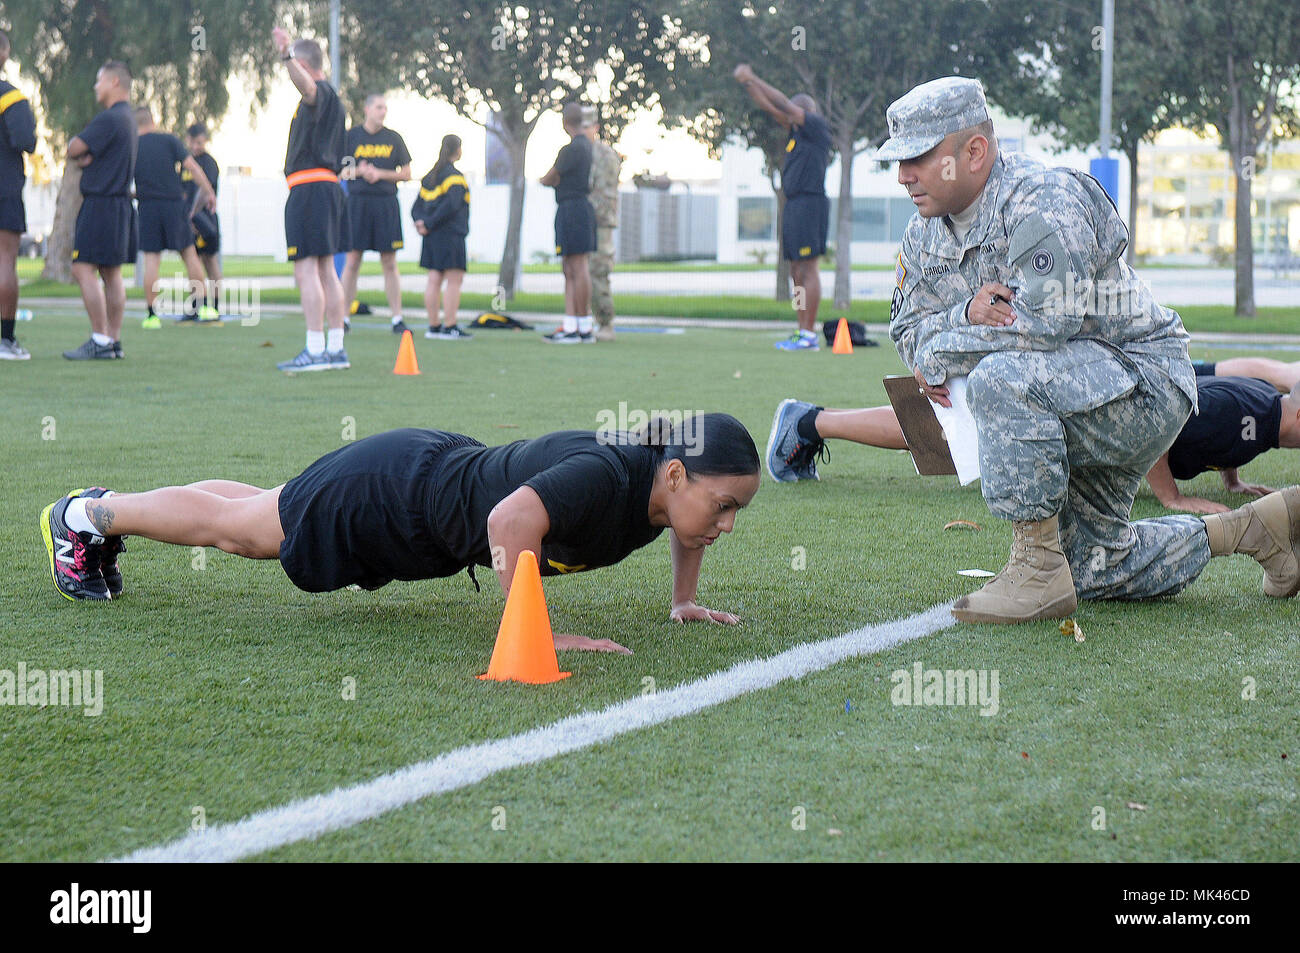 Apft Stock Photos & Apft Stock Images - Alamy